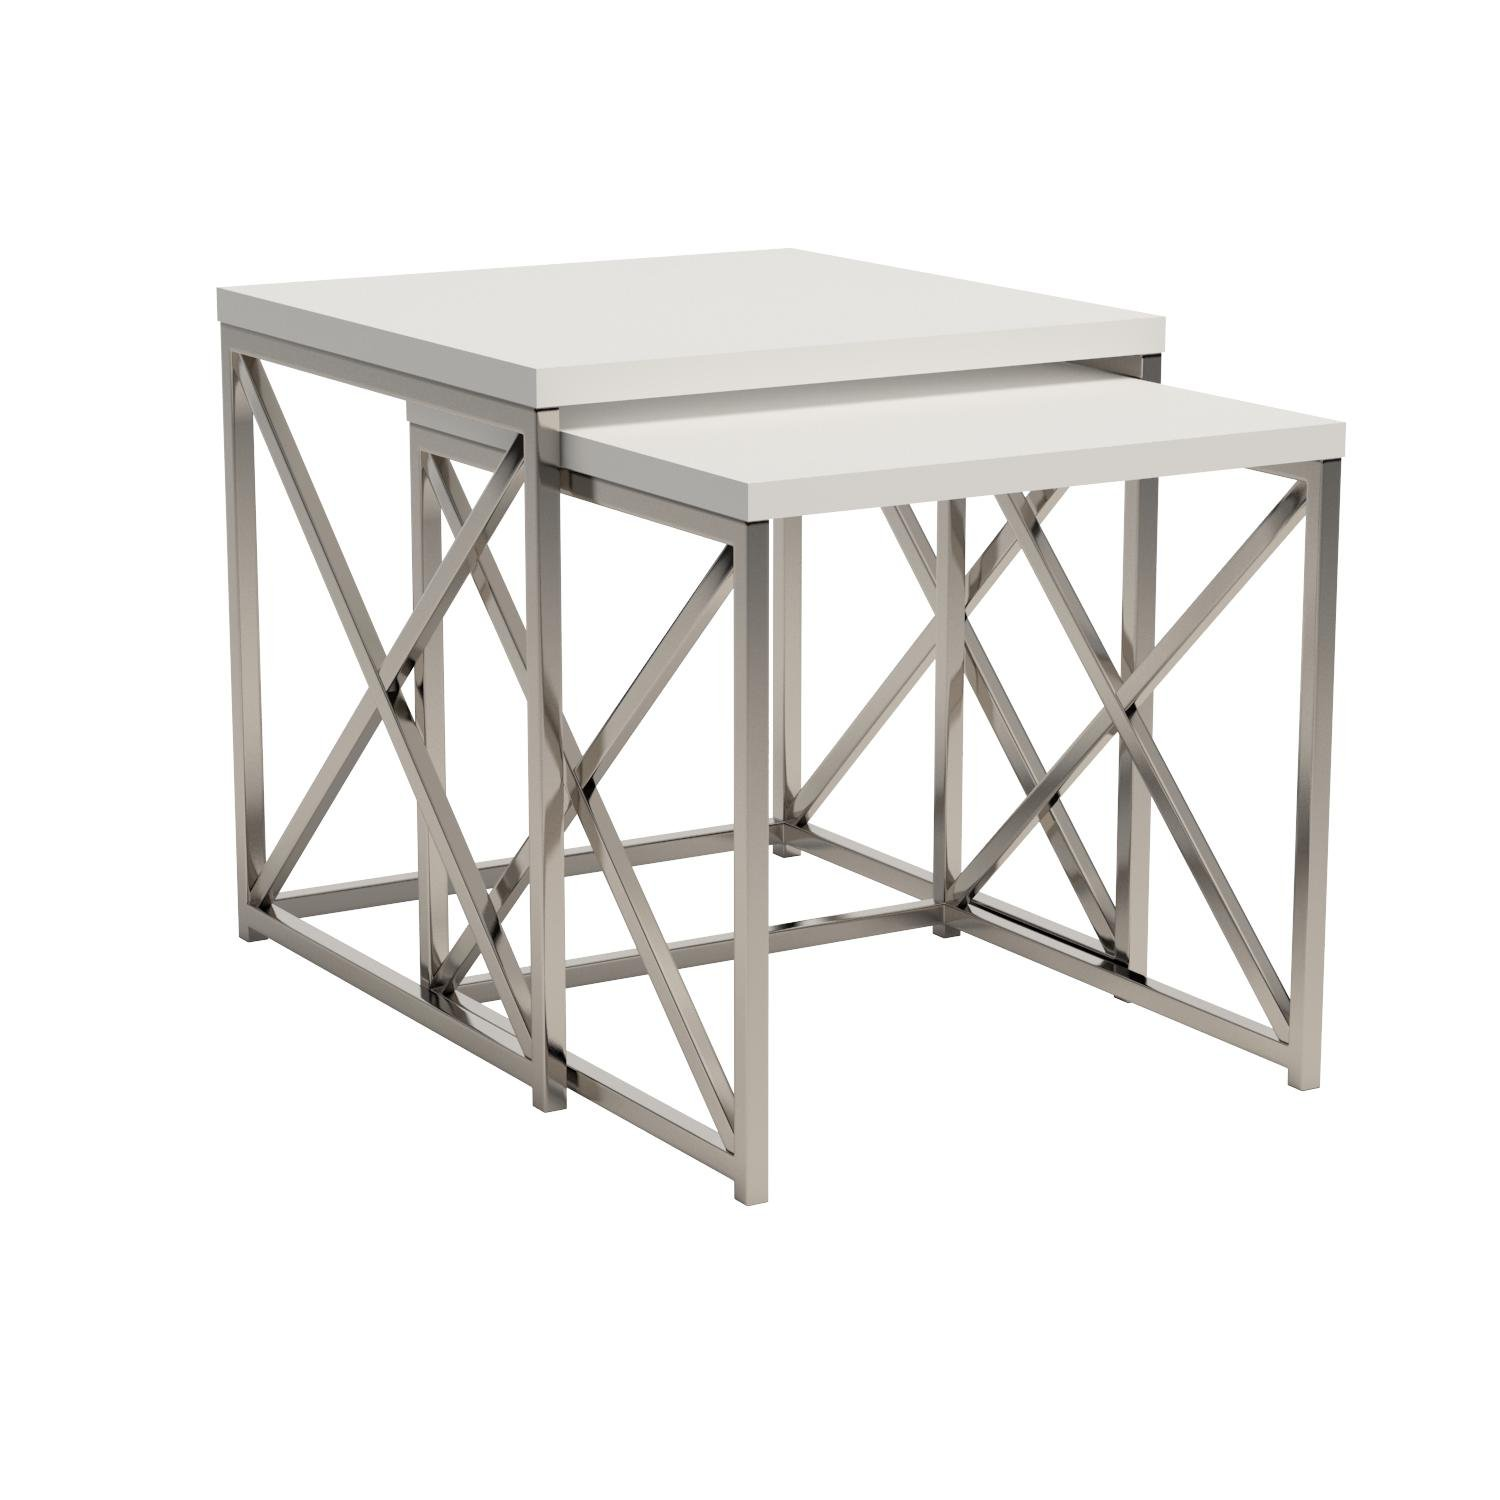 Monarch Specialties I 3025, Nesting Table, Chrome Metal, Glossy White, Table Set, 2 pcs by Monarch Specialties